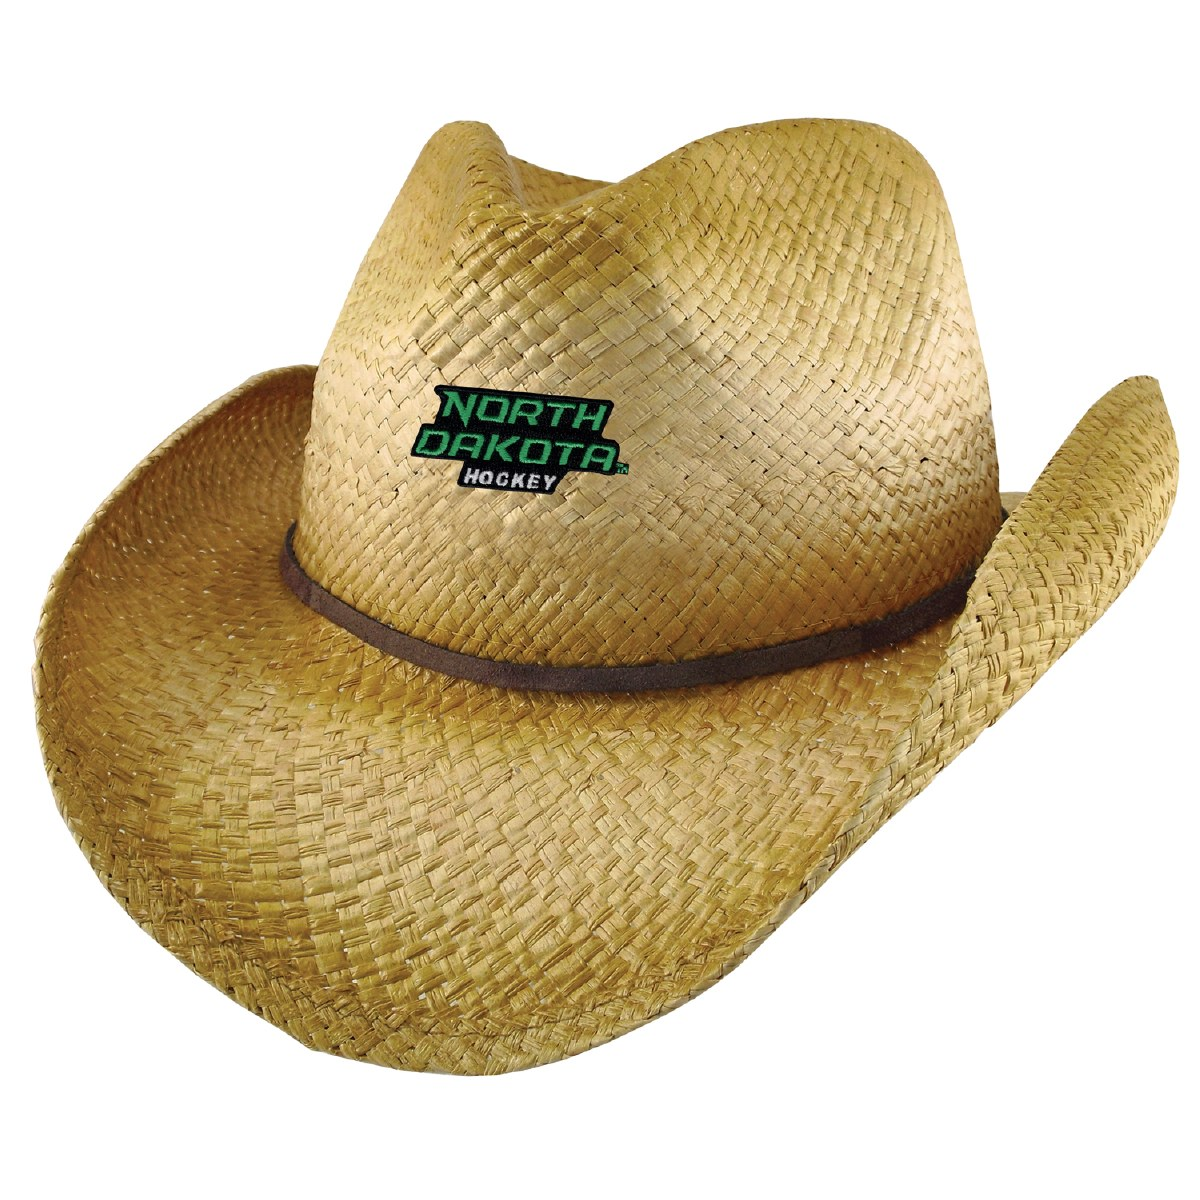 UNIVERSITY OF NORTH DAKOTA WRANGLER HAT